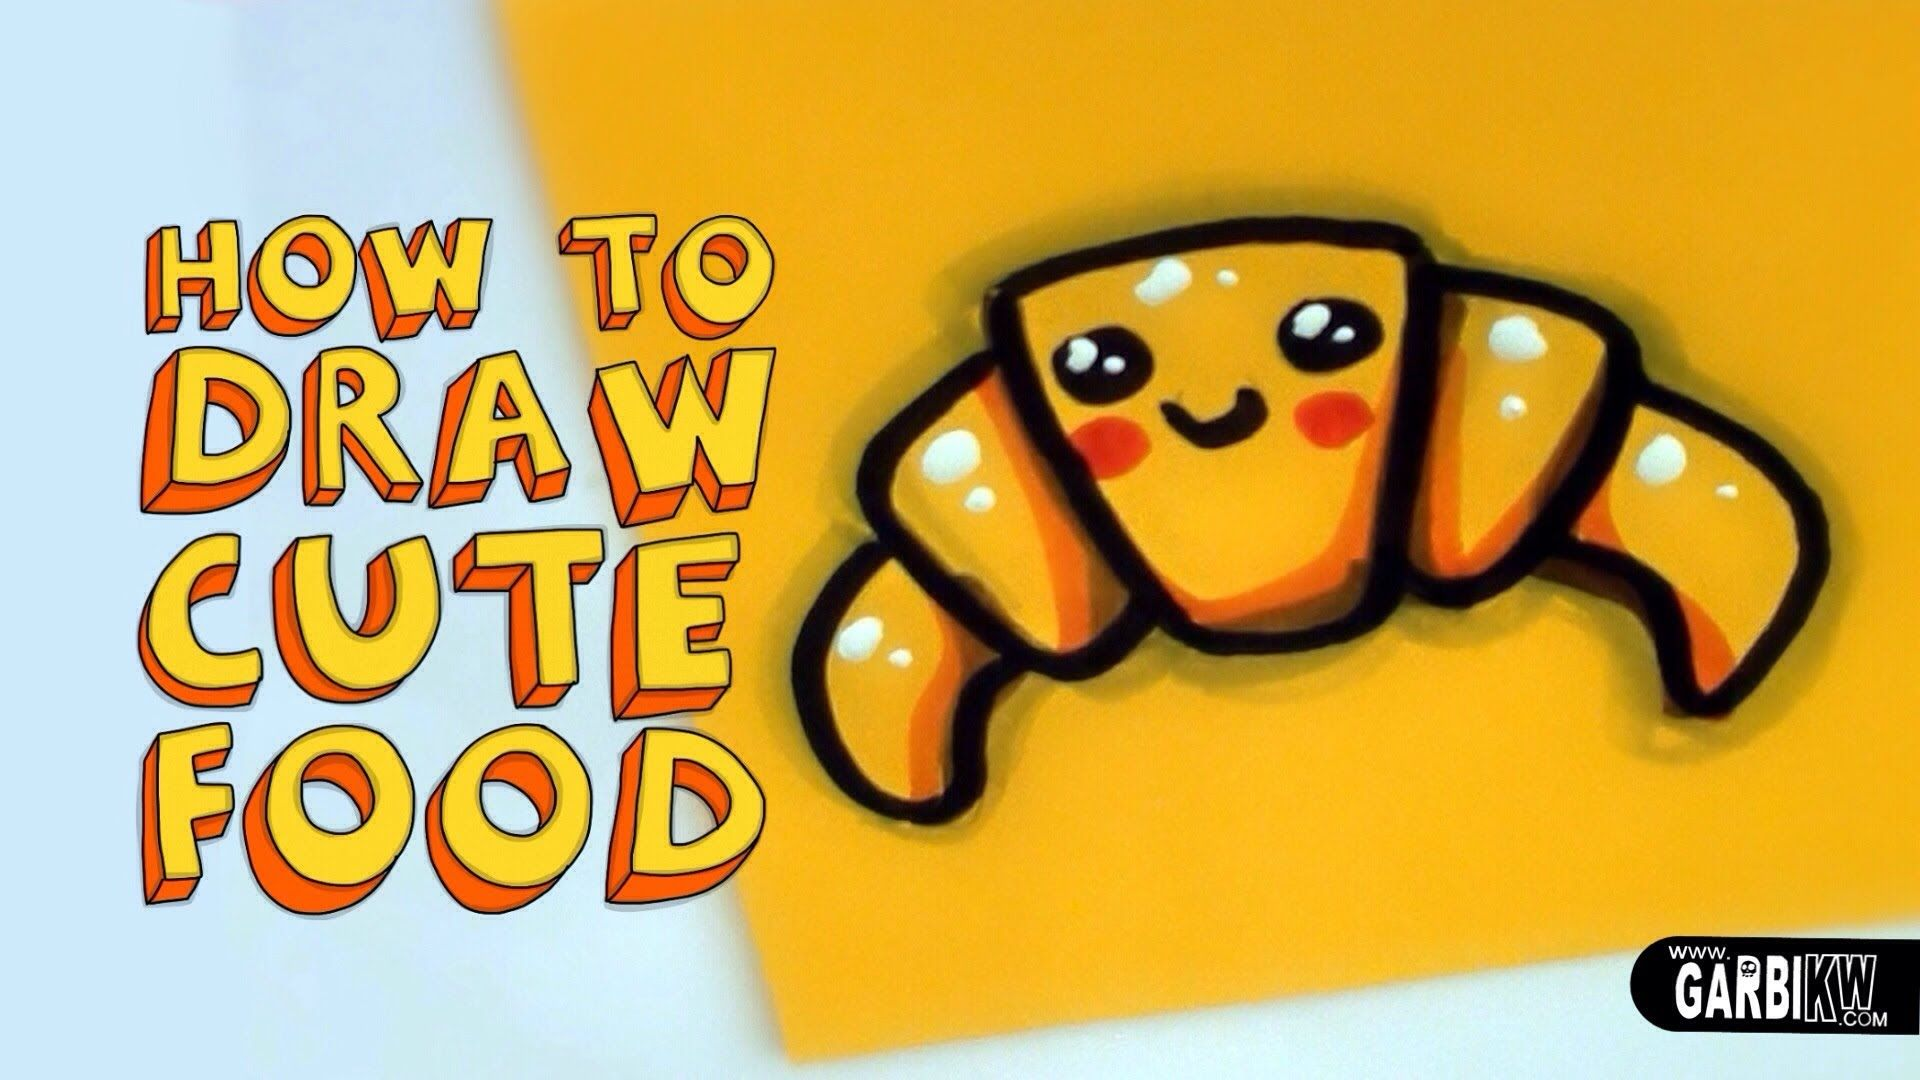 How To Draw a Cute Croissant - Kawaii Food - Easy Drawings ...